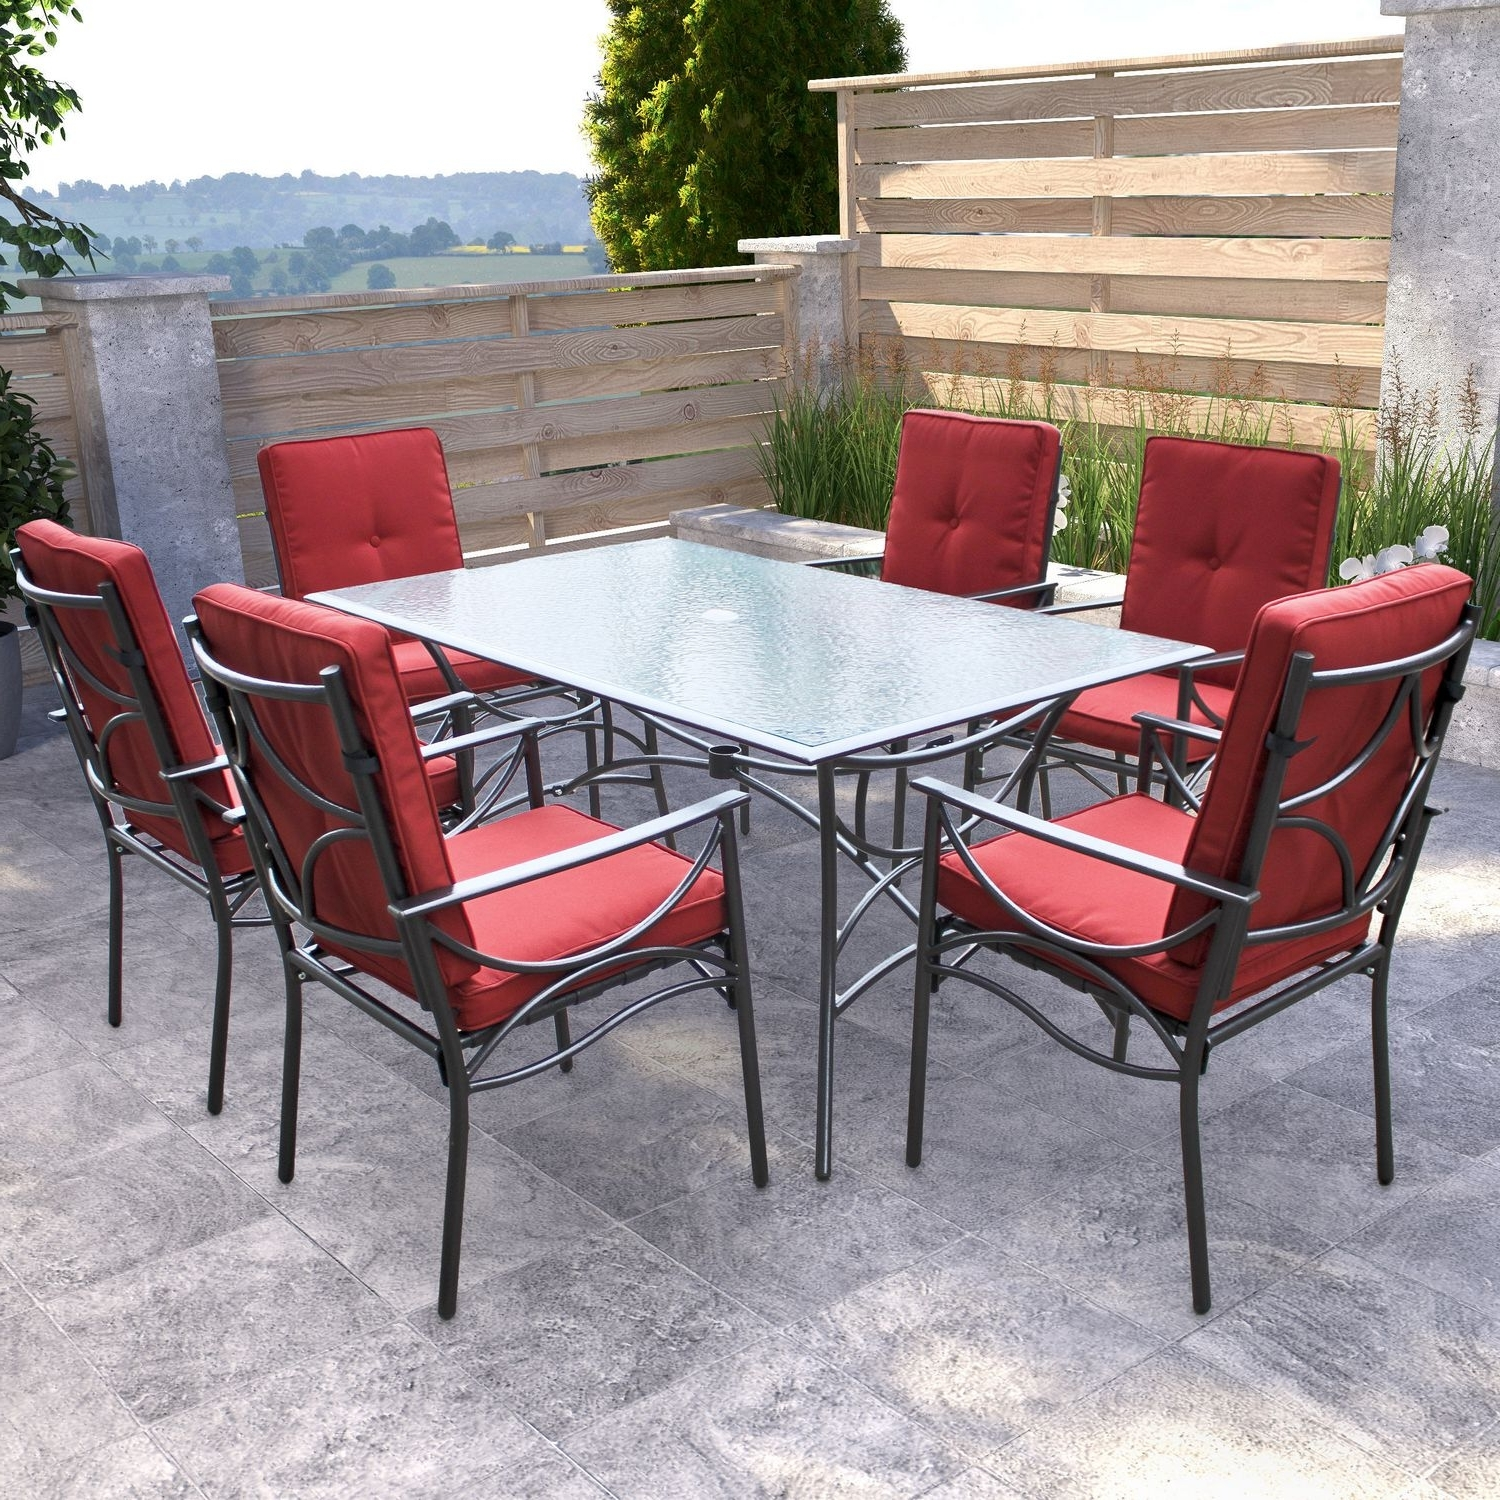 Current Patio Conversation Sets With Dining Table Regarding Furniture: Exciting Outdoor Dining Furniture Sets With Glass Top (View 20 of 20)